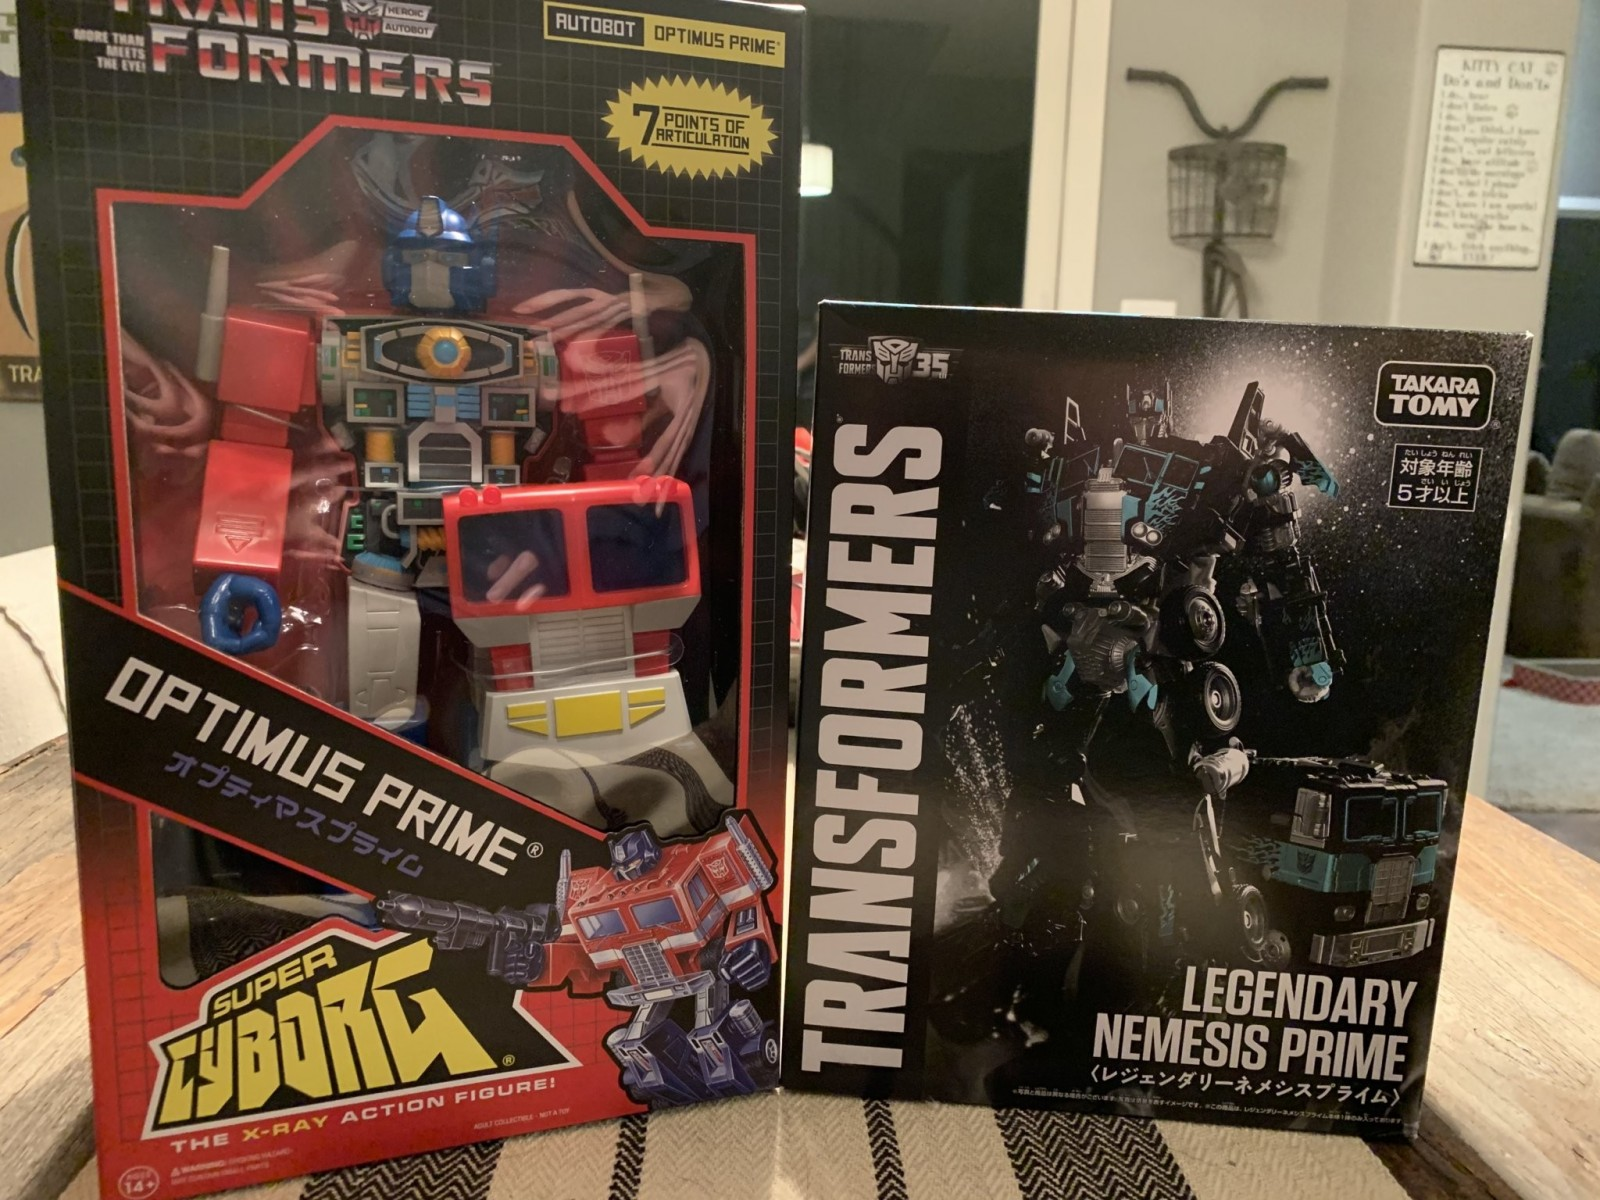 Transformers News: Images of Box for Takara 7-Eleven Exclusive Legendary Nemesis Prime Who is Also Out Now